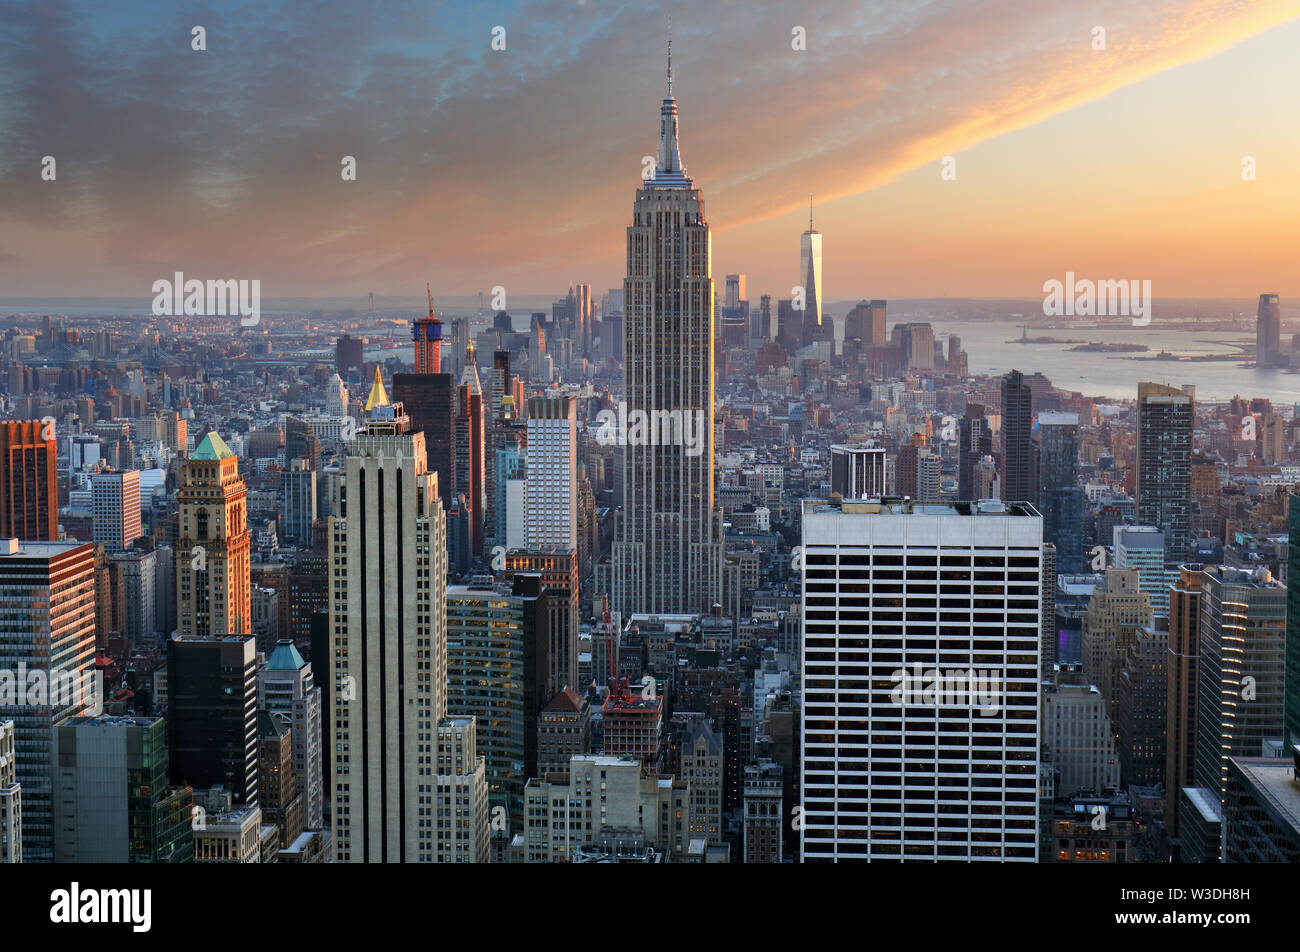 New York City. Manhattan downtown skyline with illuminated Empire State Building and skyscrapers at sunset. Stock Photo